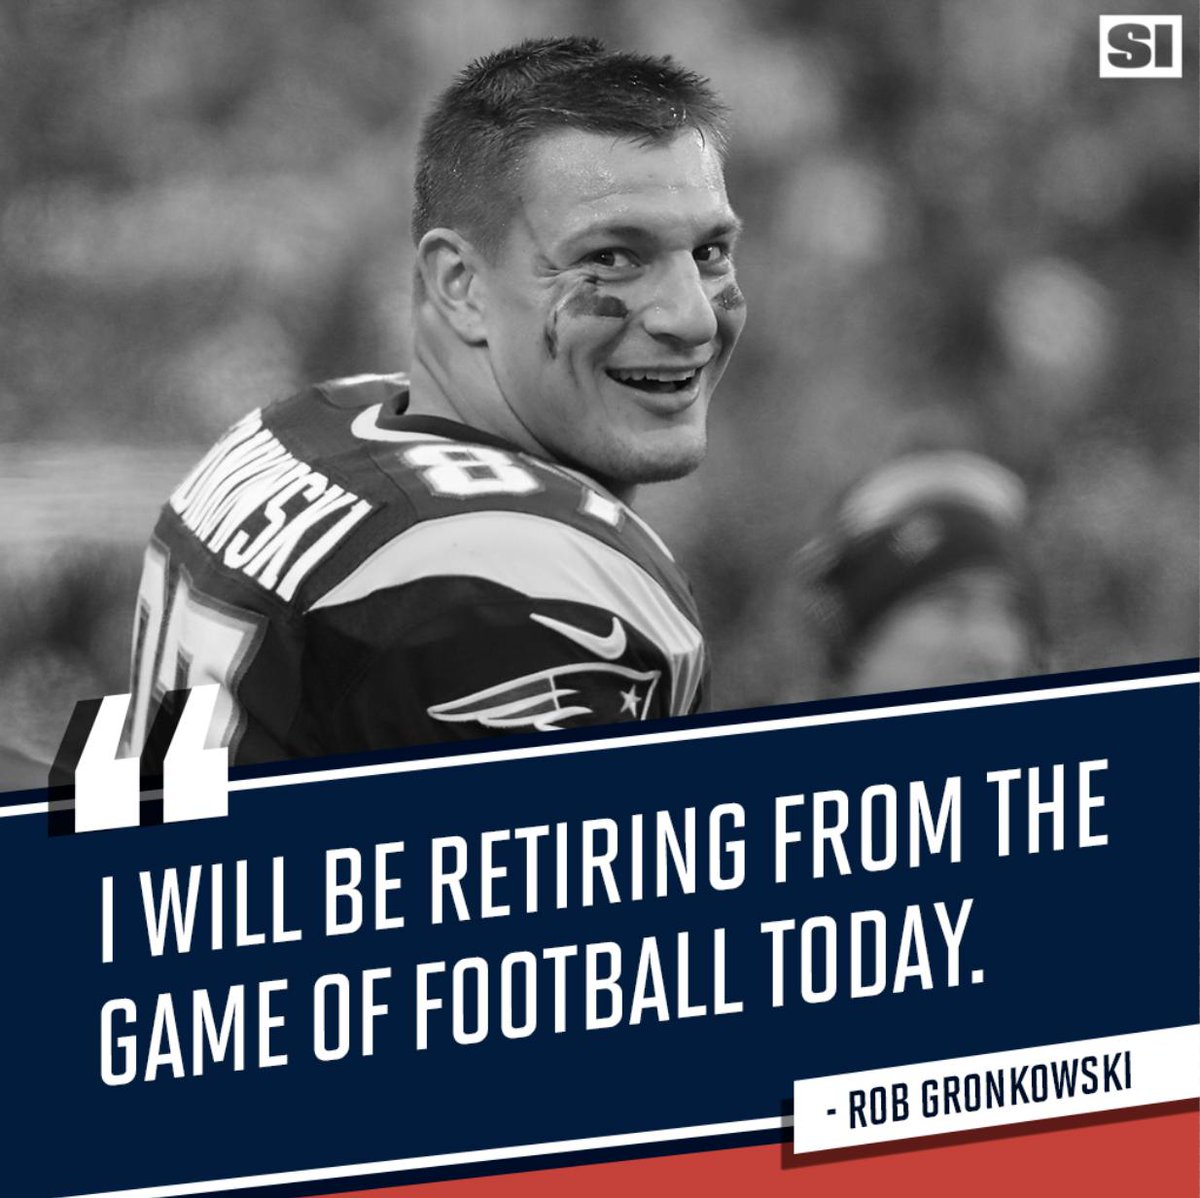 Rob Gronkowski is hanging it up after three Super Bowls with the Patriots: http://go.si.com/D6BgWcf